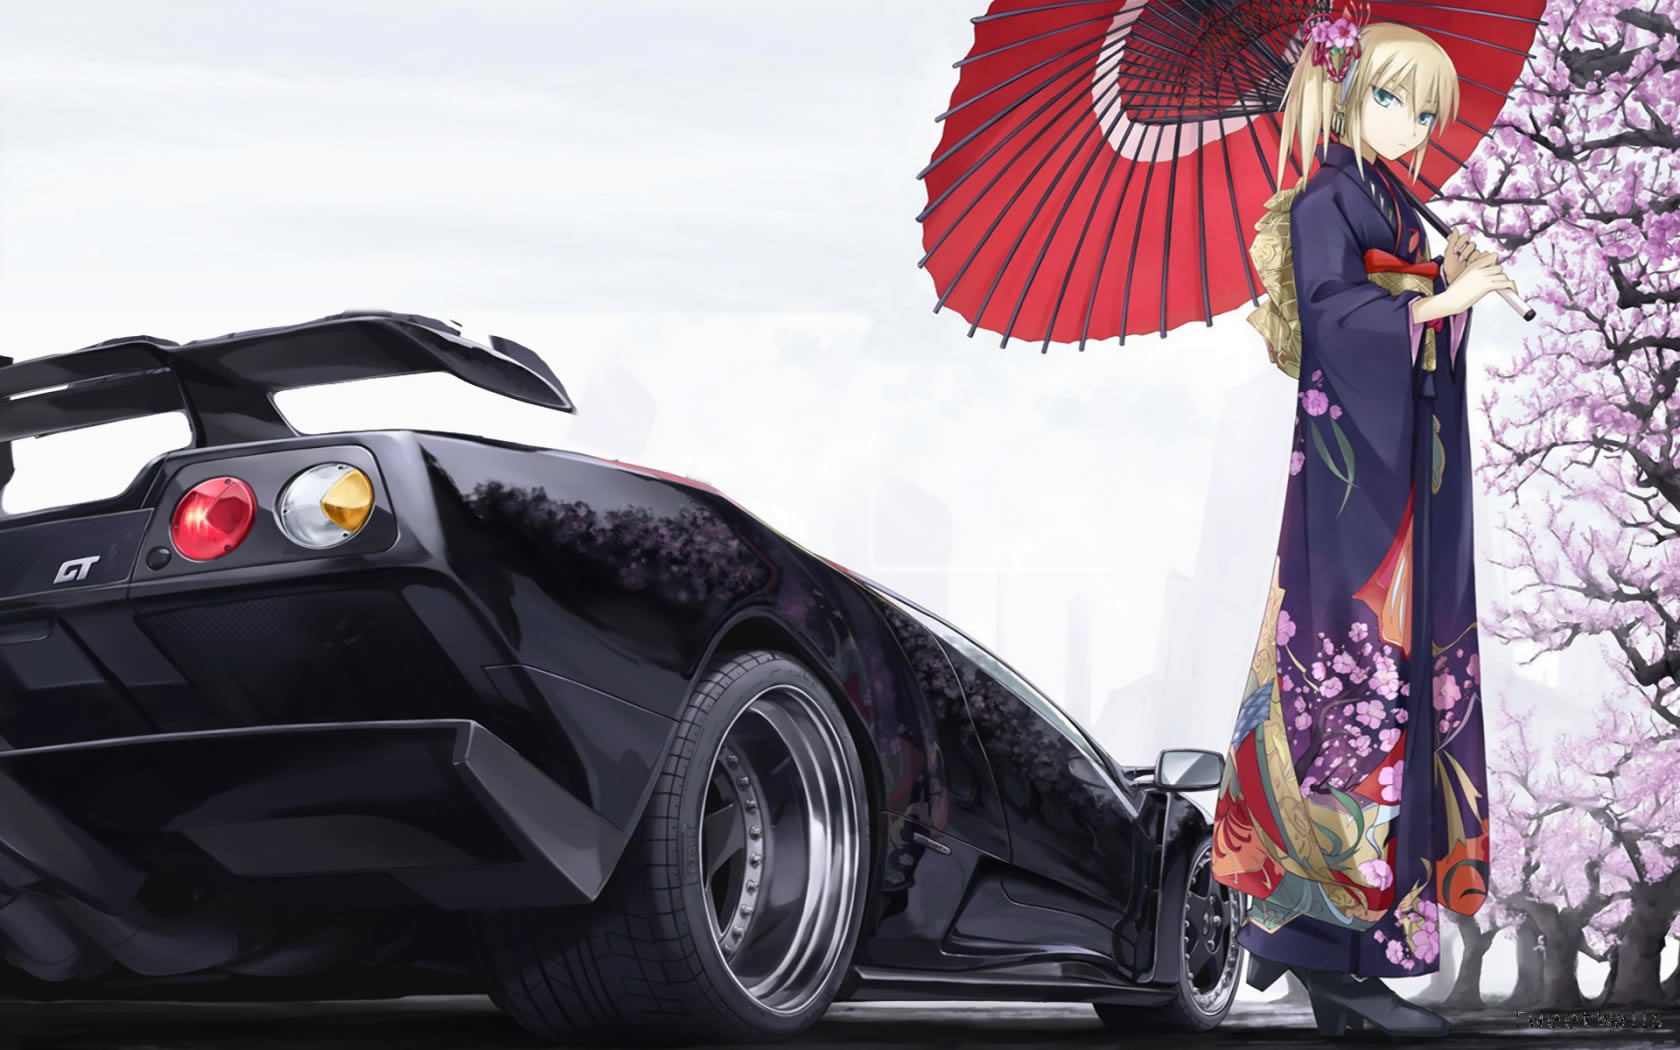 Cool Car And Cute Girl Anime Wallpaper Wallpaper   WallpaperLepi Cool Car And Cute Girl Anime Wallpaper